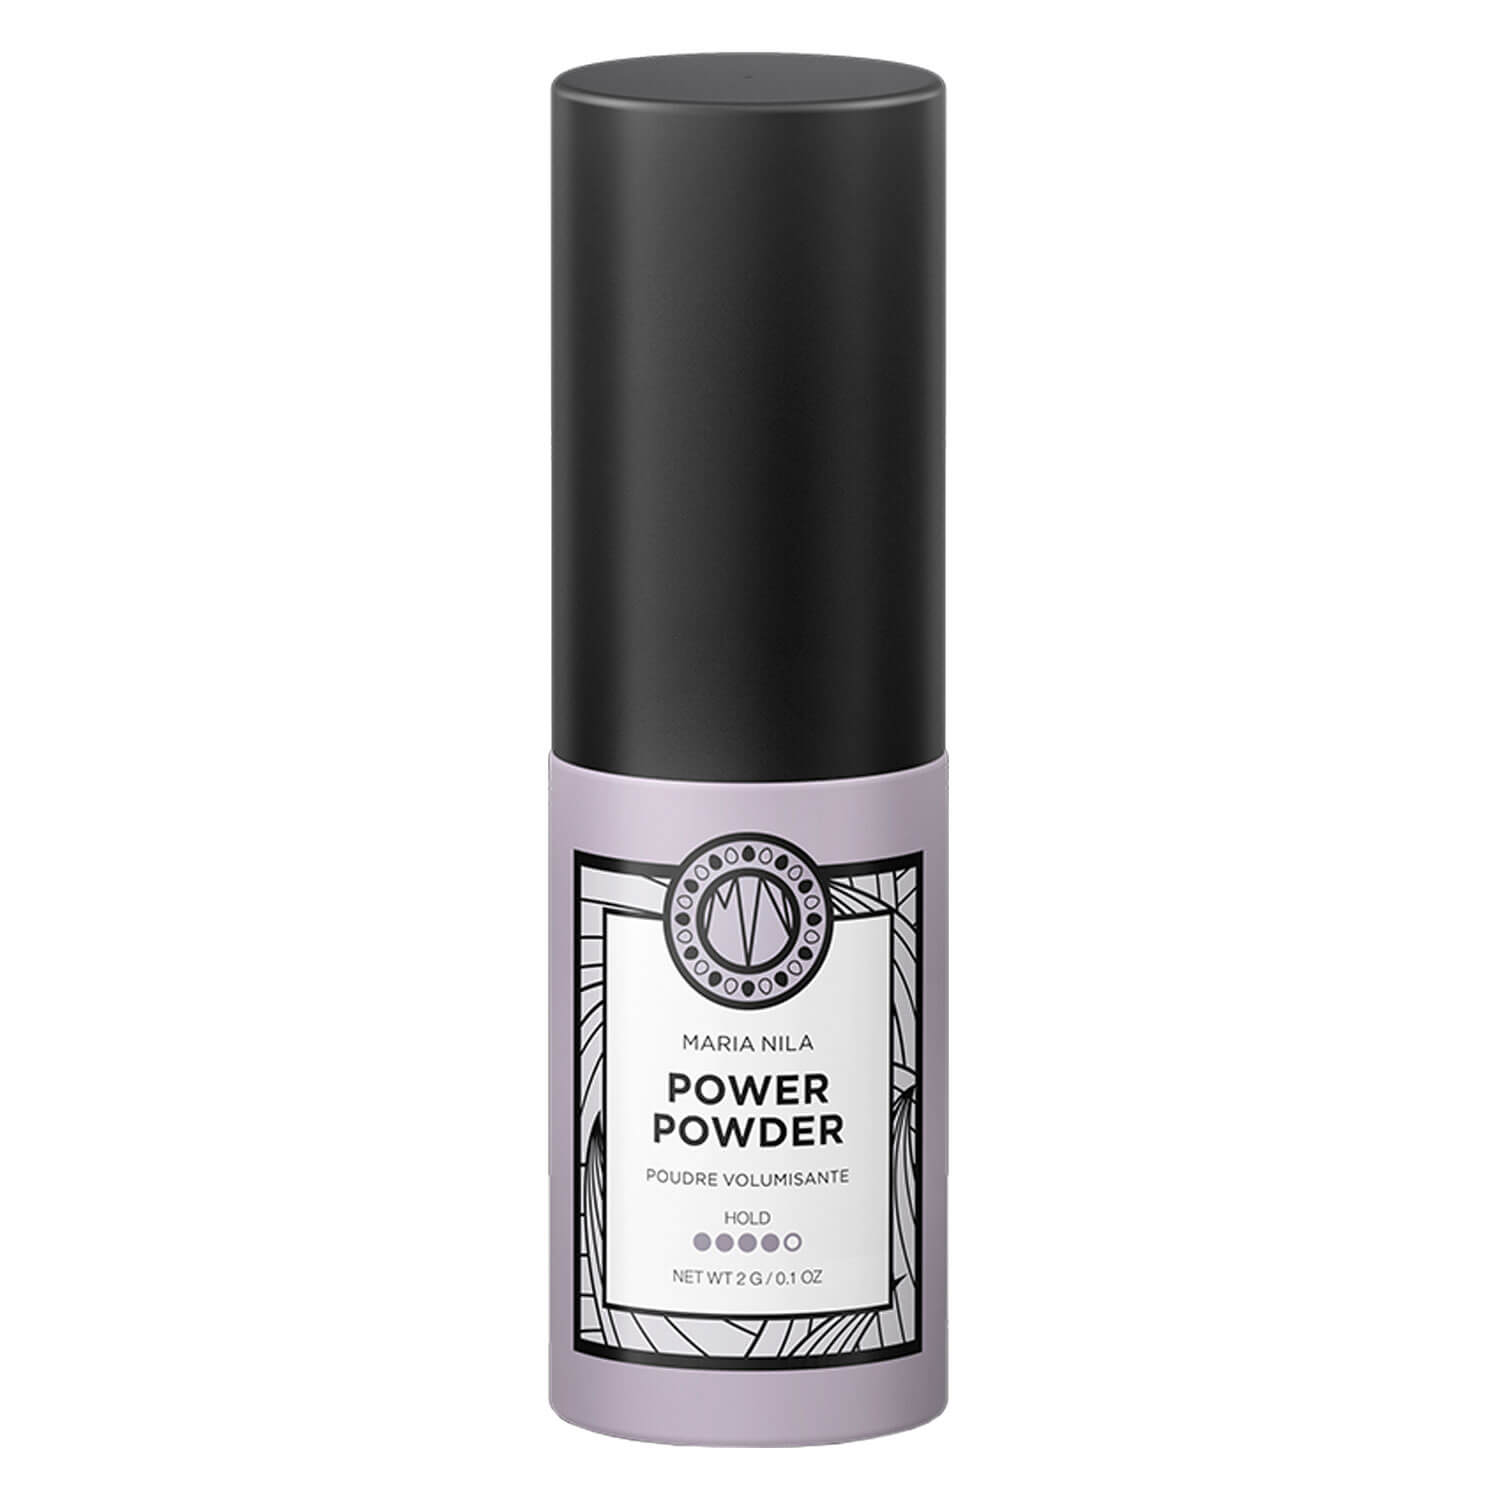 Style & Finish - Power Powder